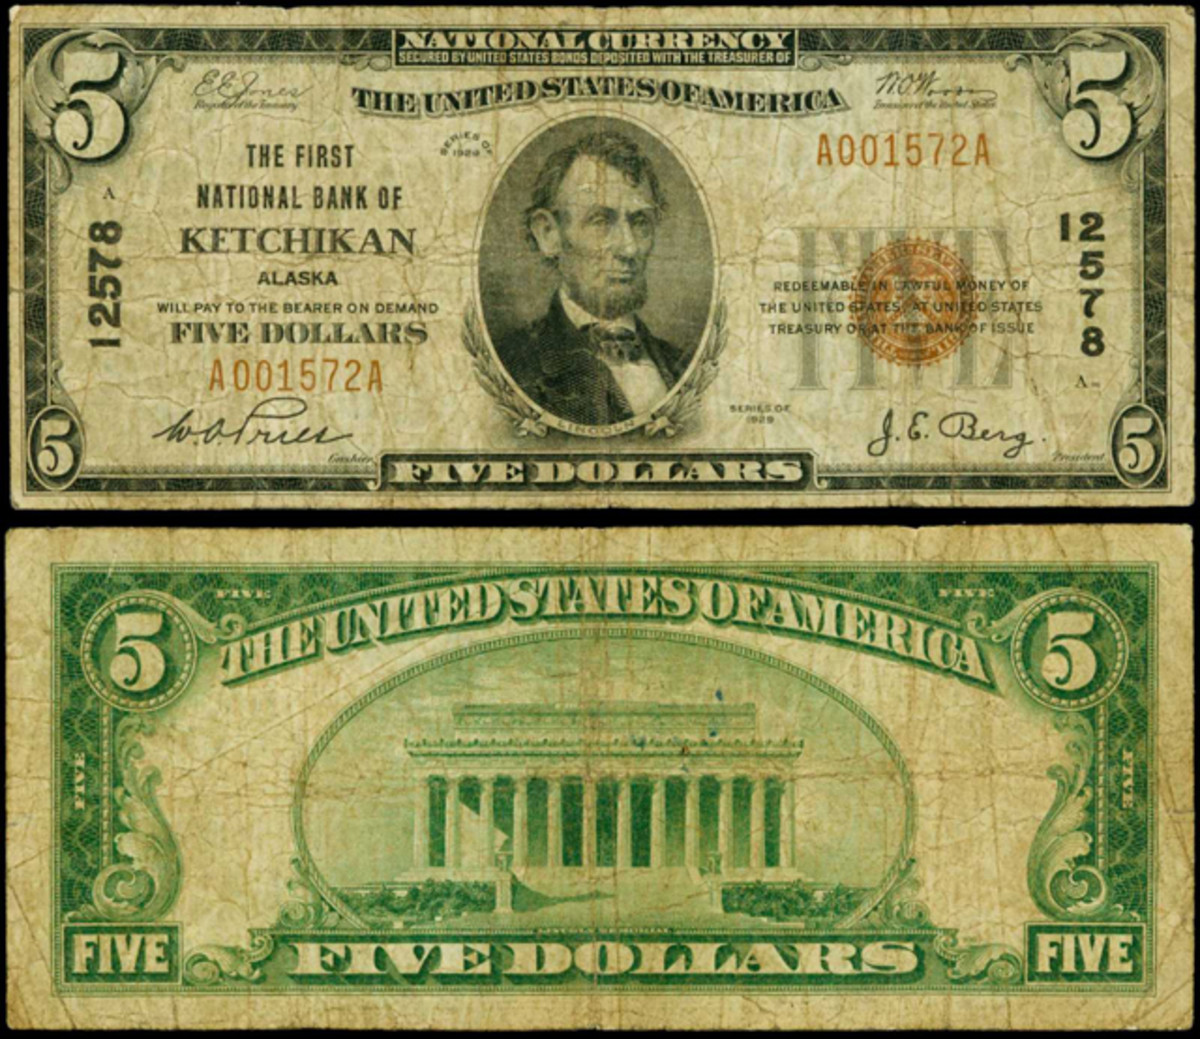 A rare national from Alaska is graded PCGS Very Good 10. It is from The First National Bank of Ketchikan.